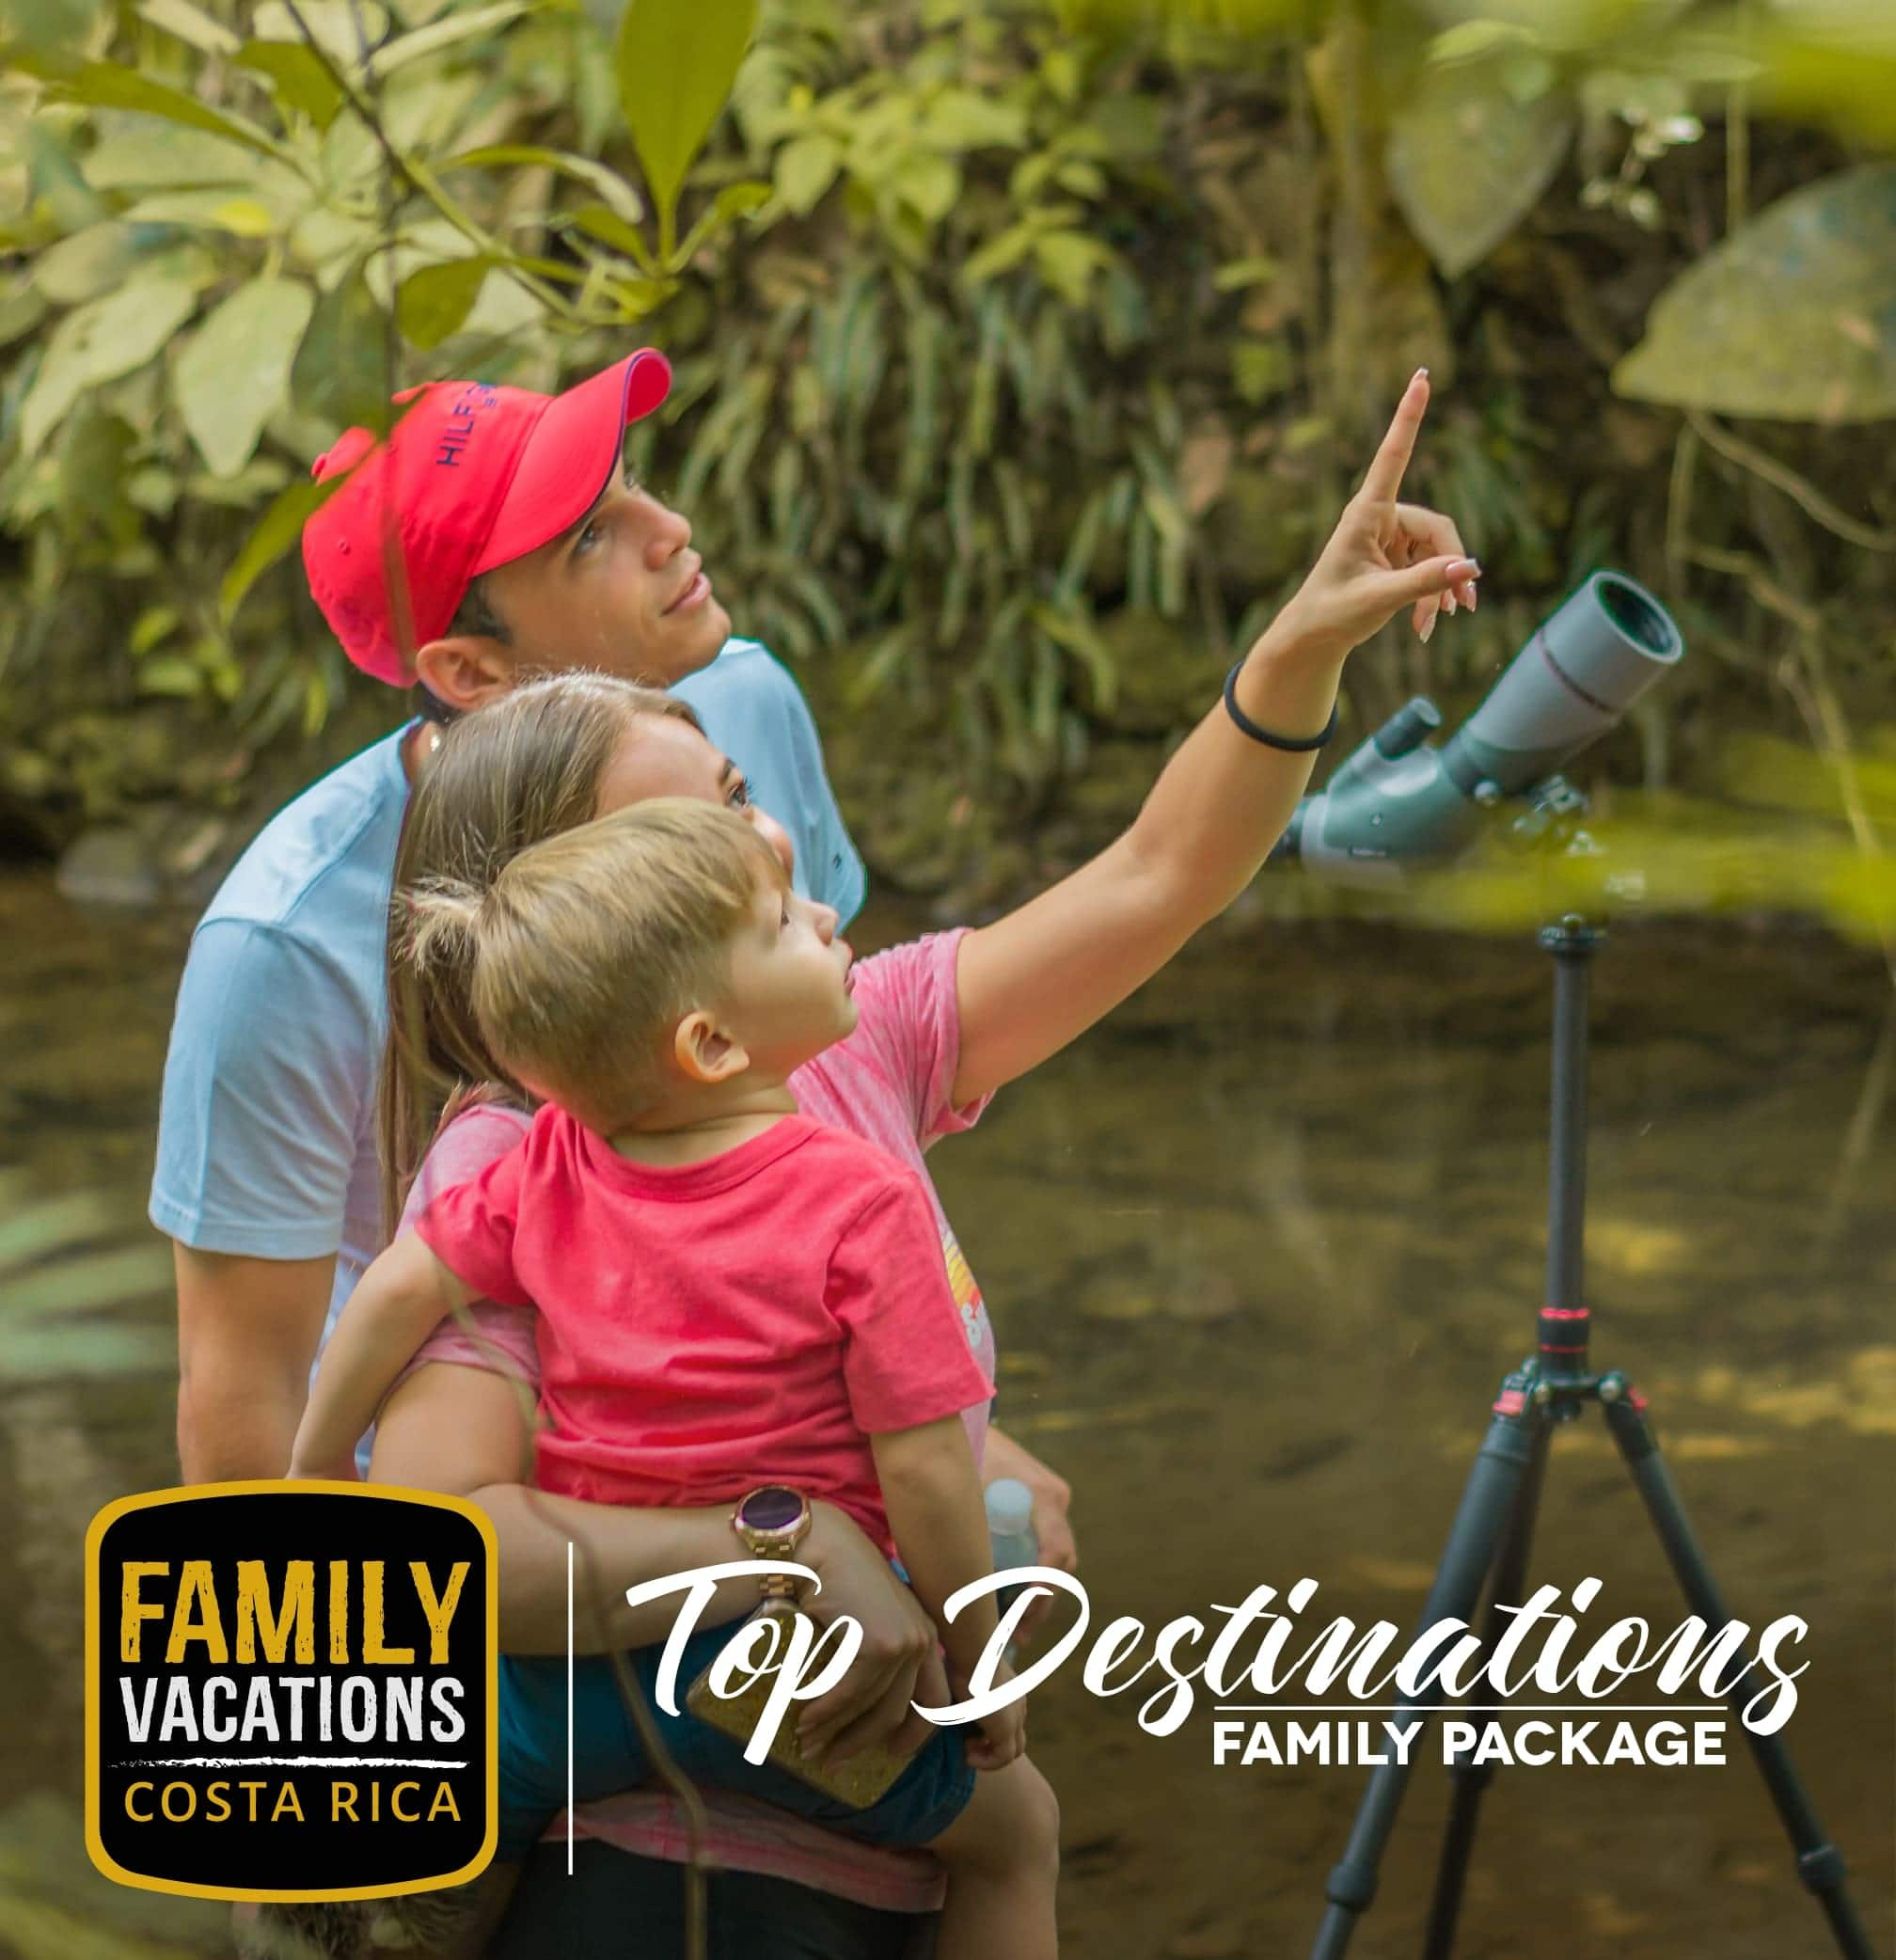 Top Destinations family travel